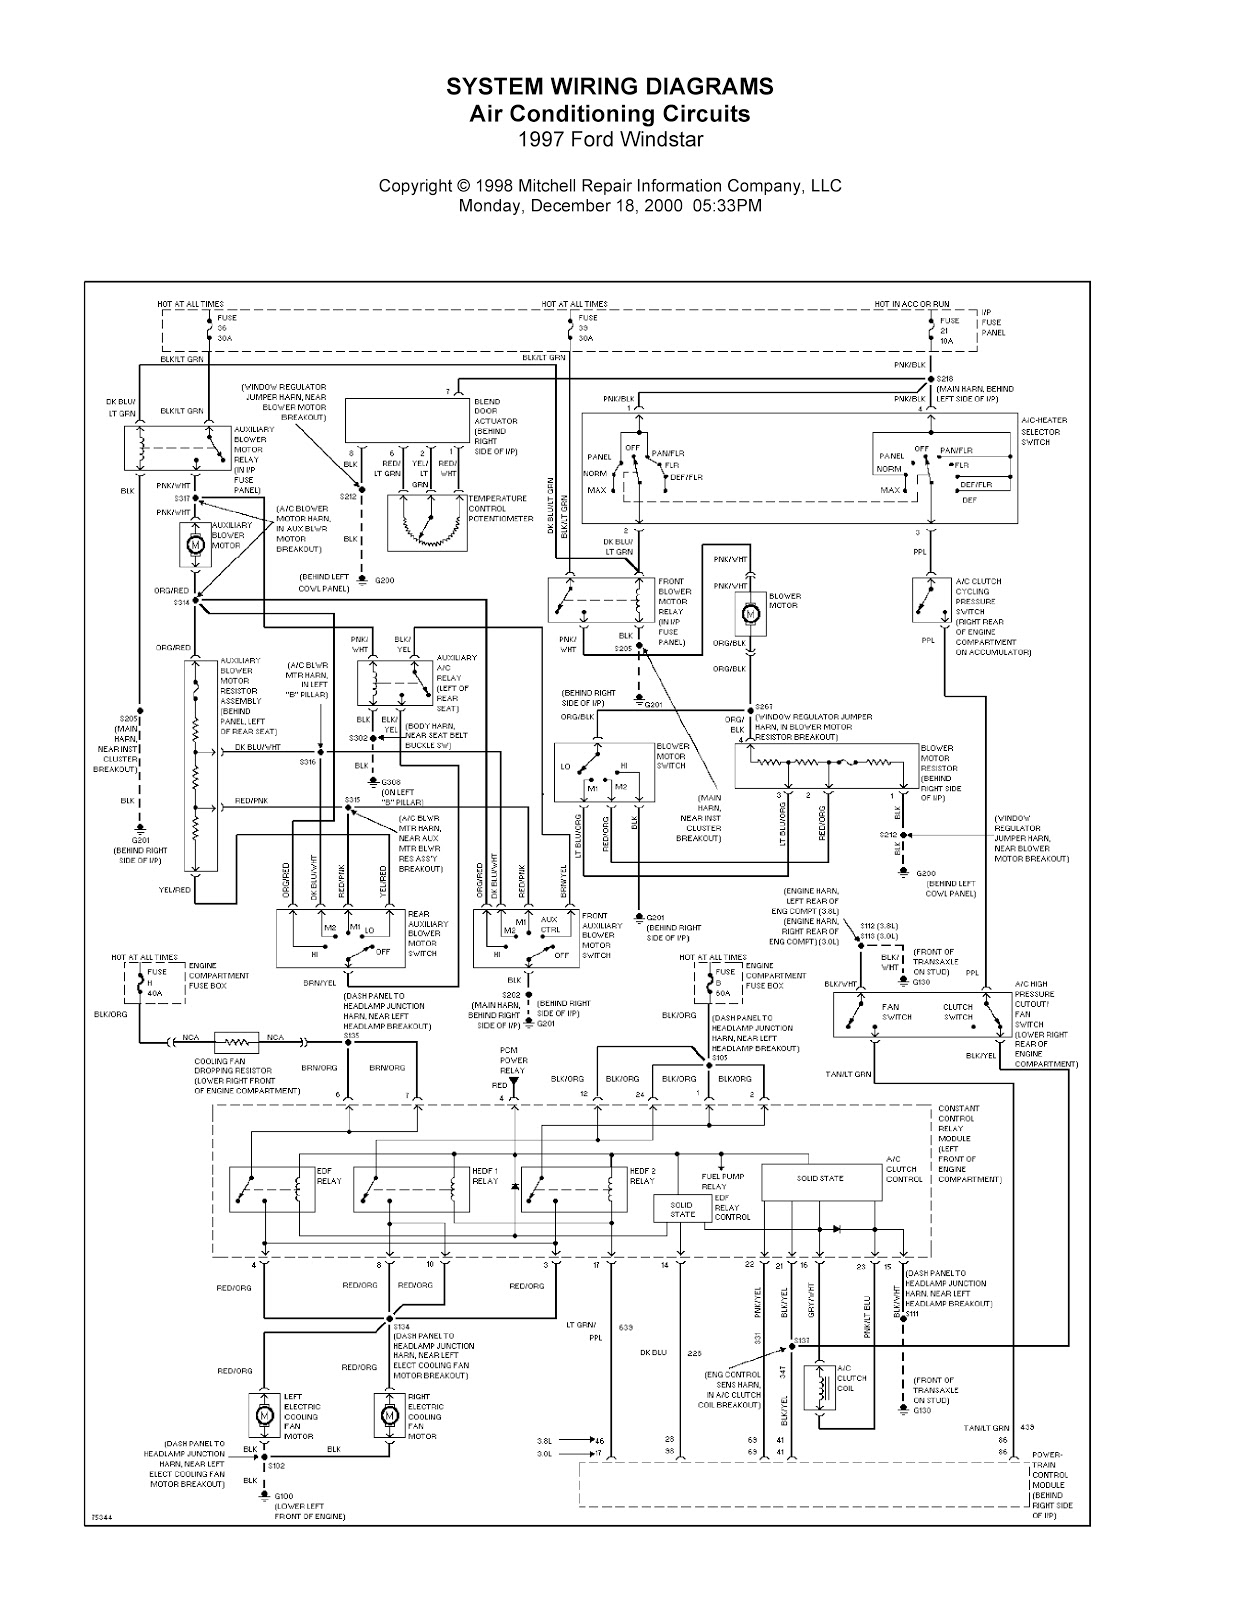 0001 1998 ford f150 wiring diagram 1998 ford f150 troubleshooting 2000 ford windstar fuse box diagram at love-stories.co